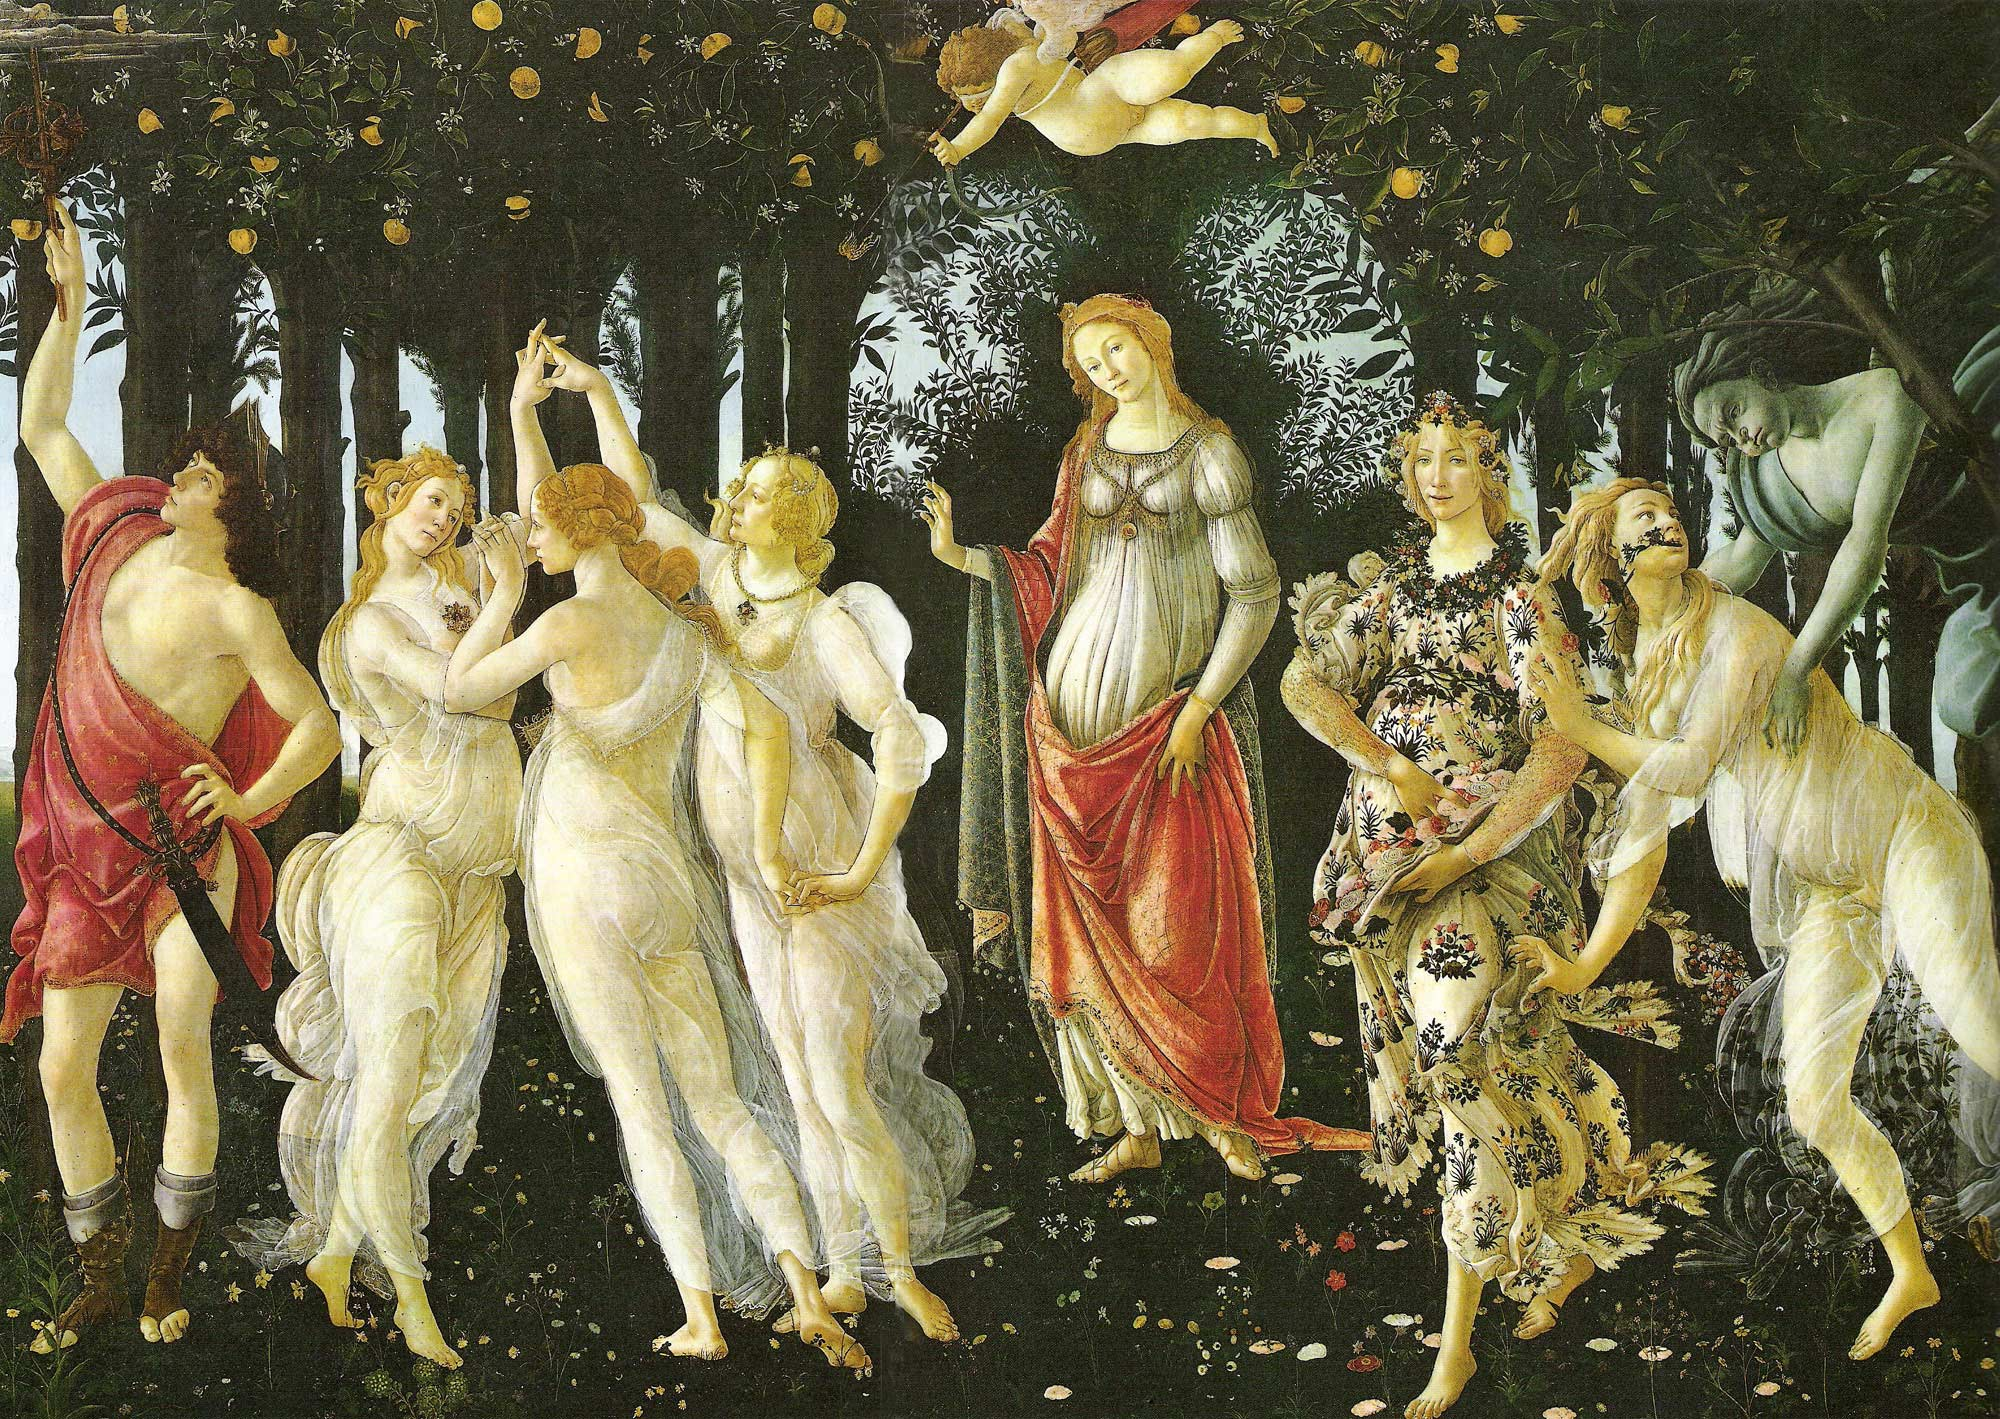 Primavera,1477 - Sandro Botticelli painting on canvas